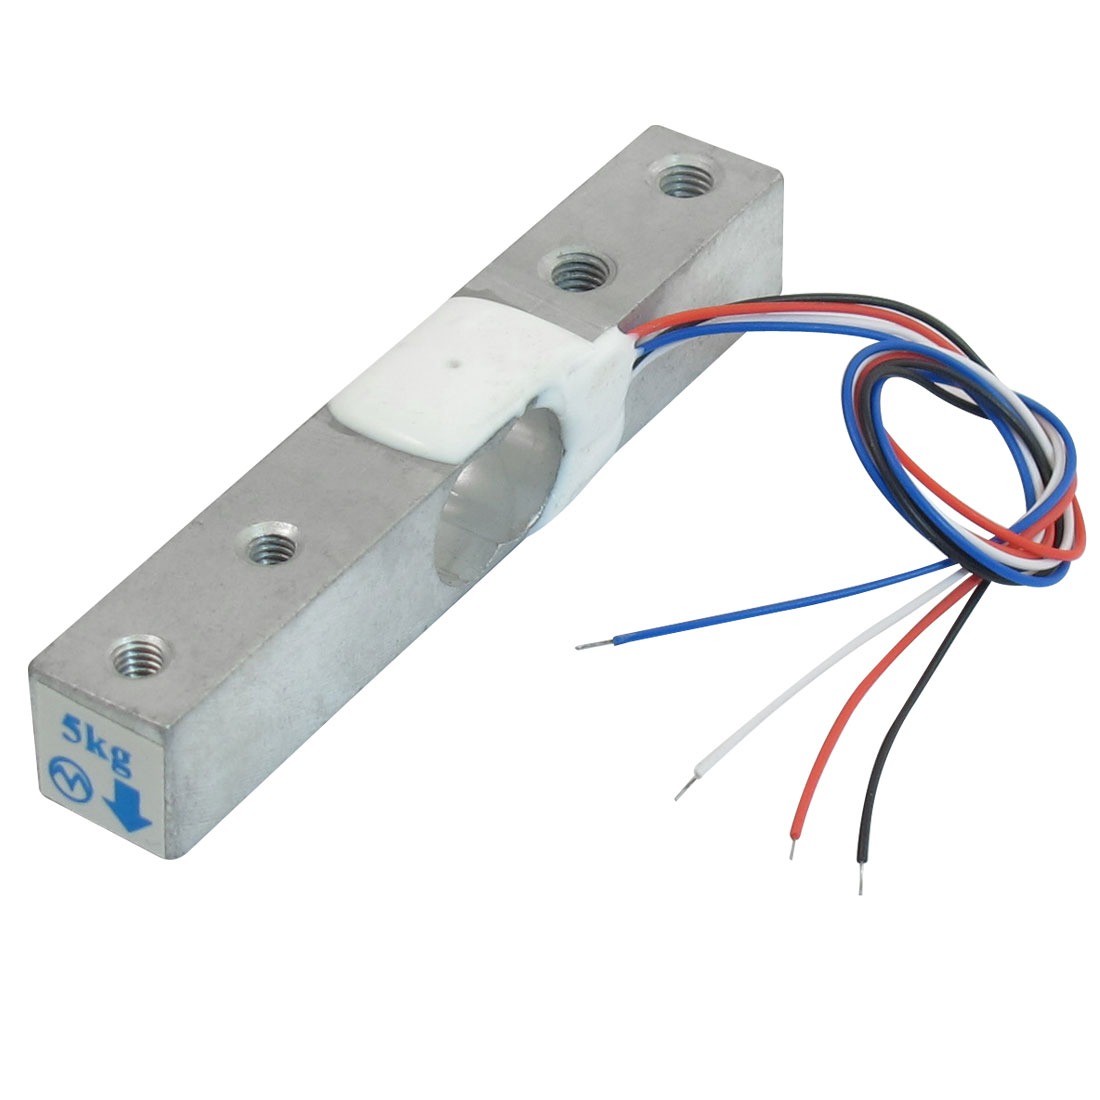 80mmx12.7mmx12.7mm Weighing Electronic Balance Wired Load Cell Sensor 0-5Kg